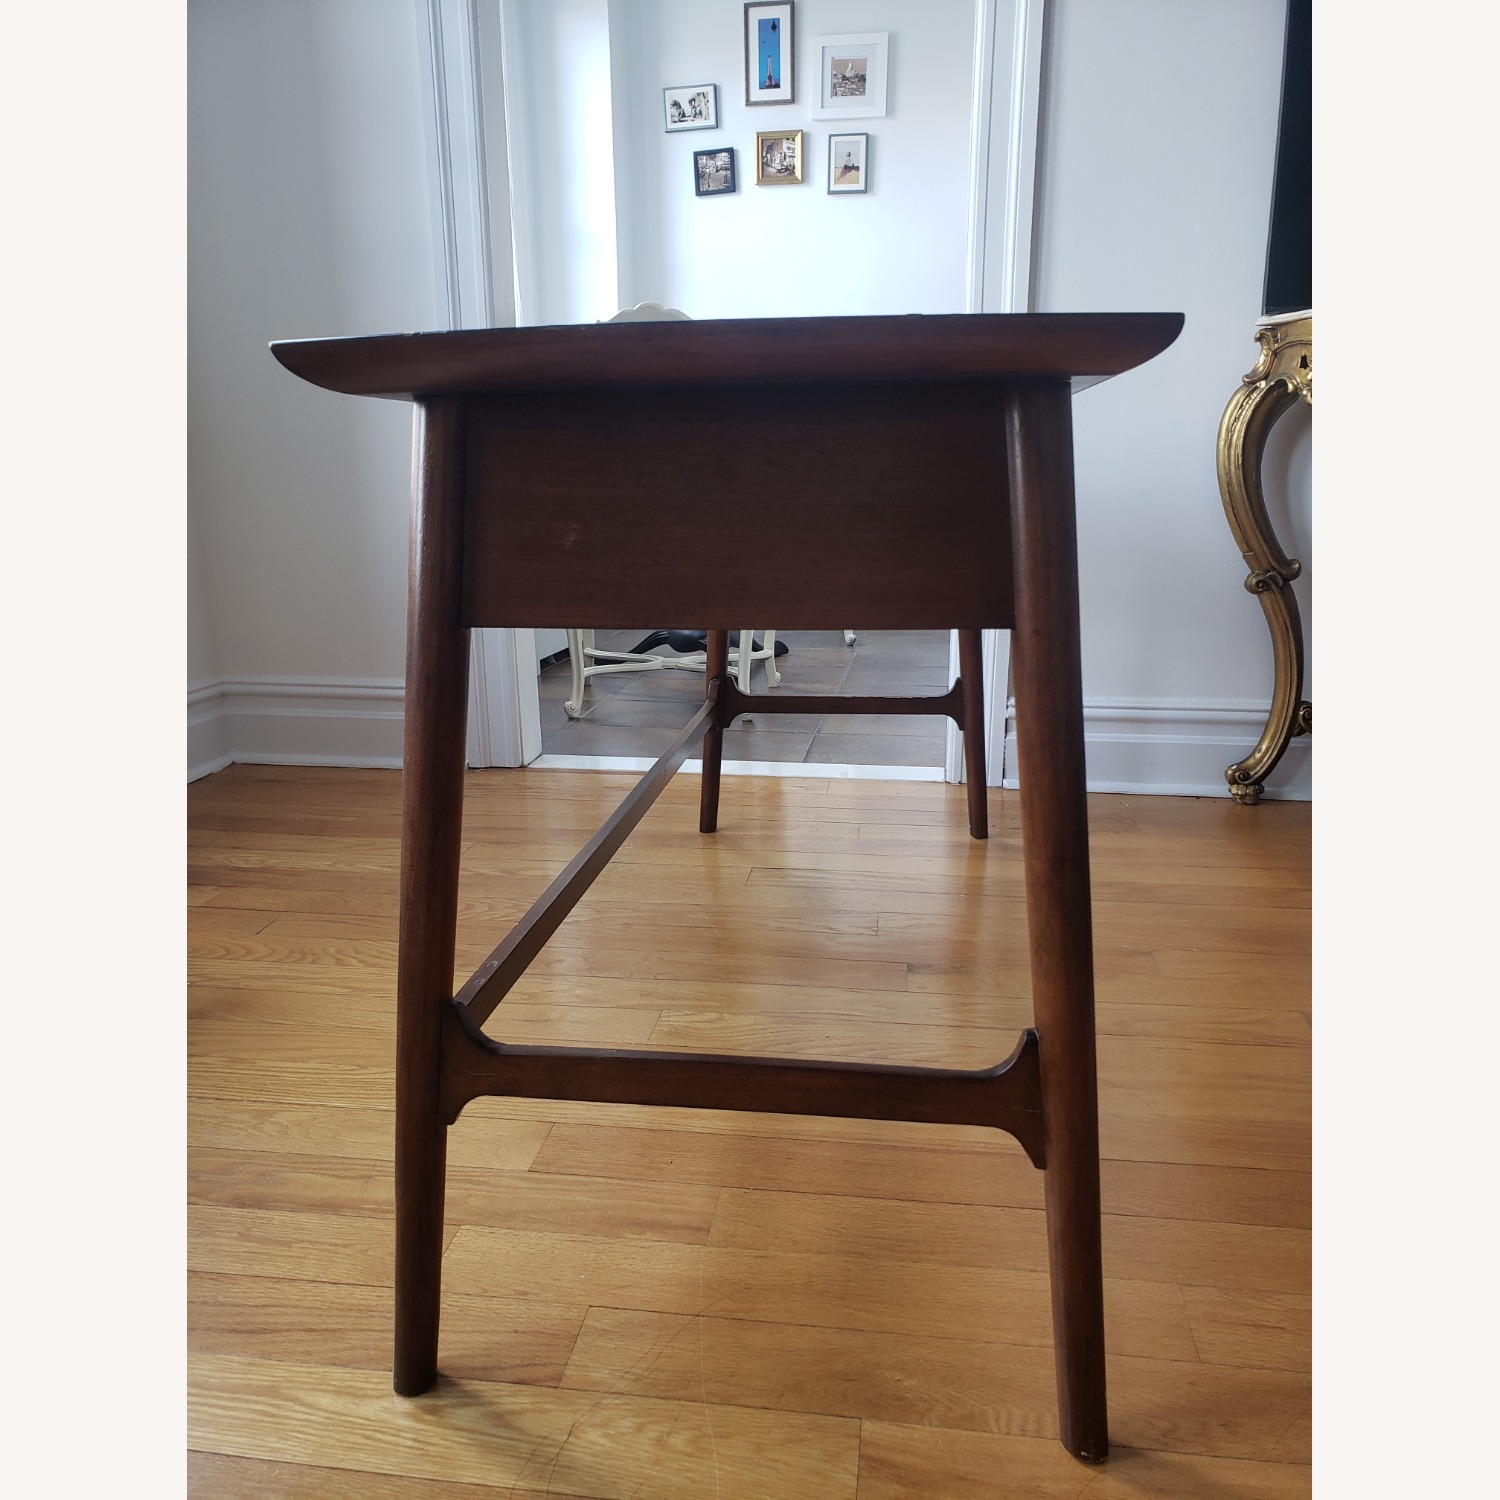 Desk from France&Son for Office, Home office - image-3